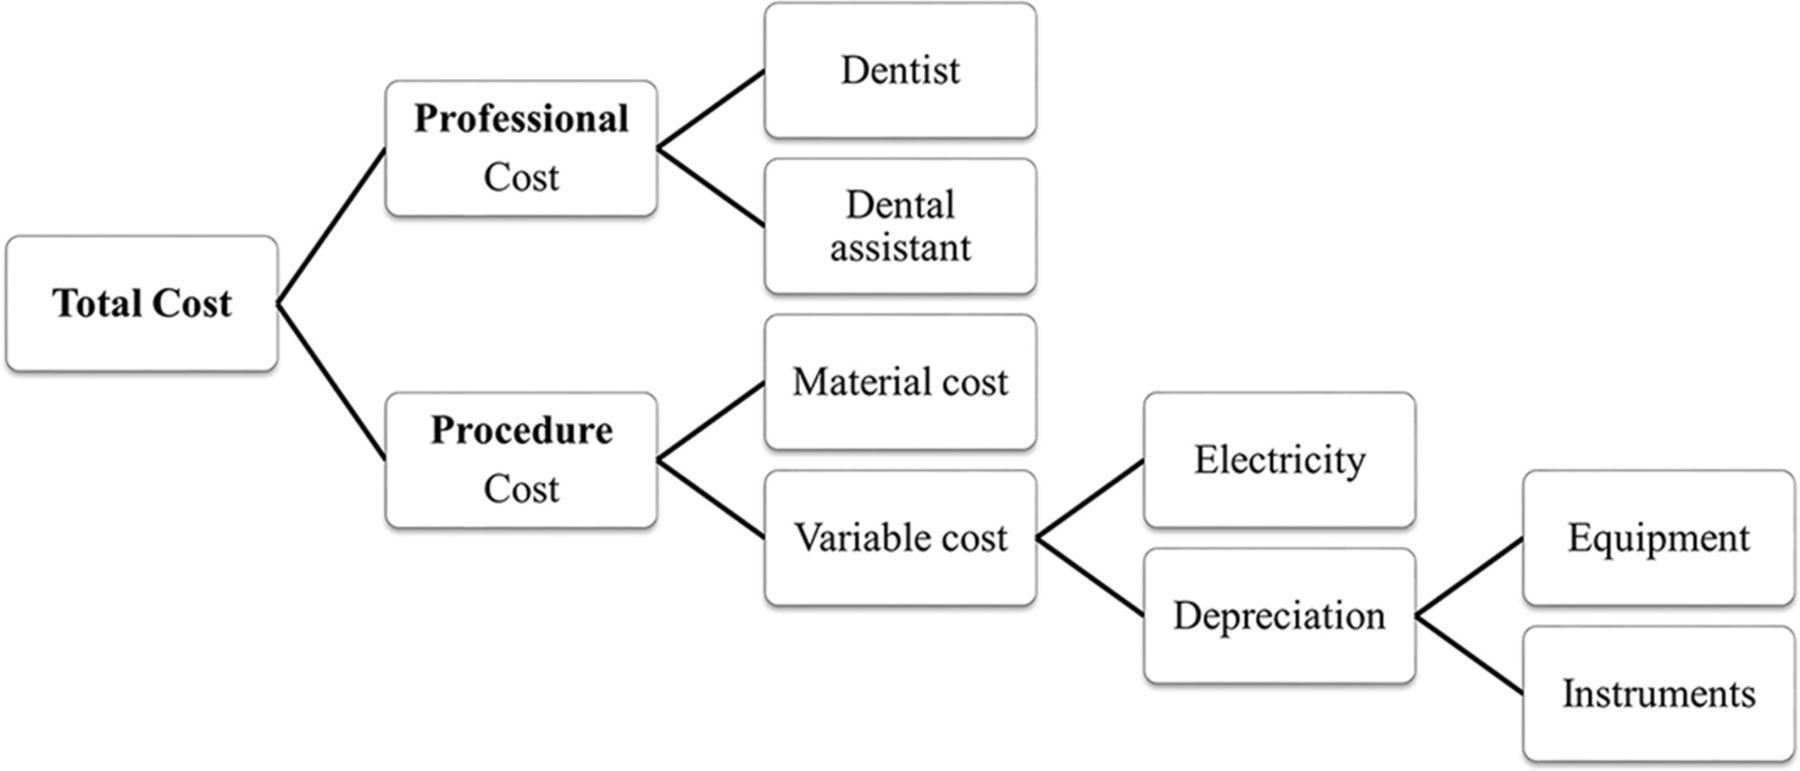 Efficacy of conventional treatment with composite resin and